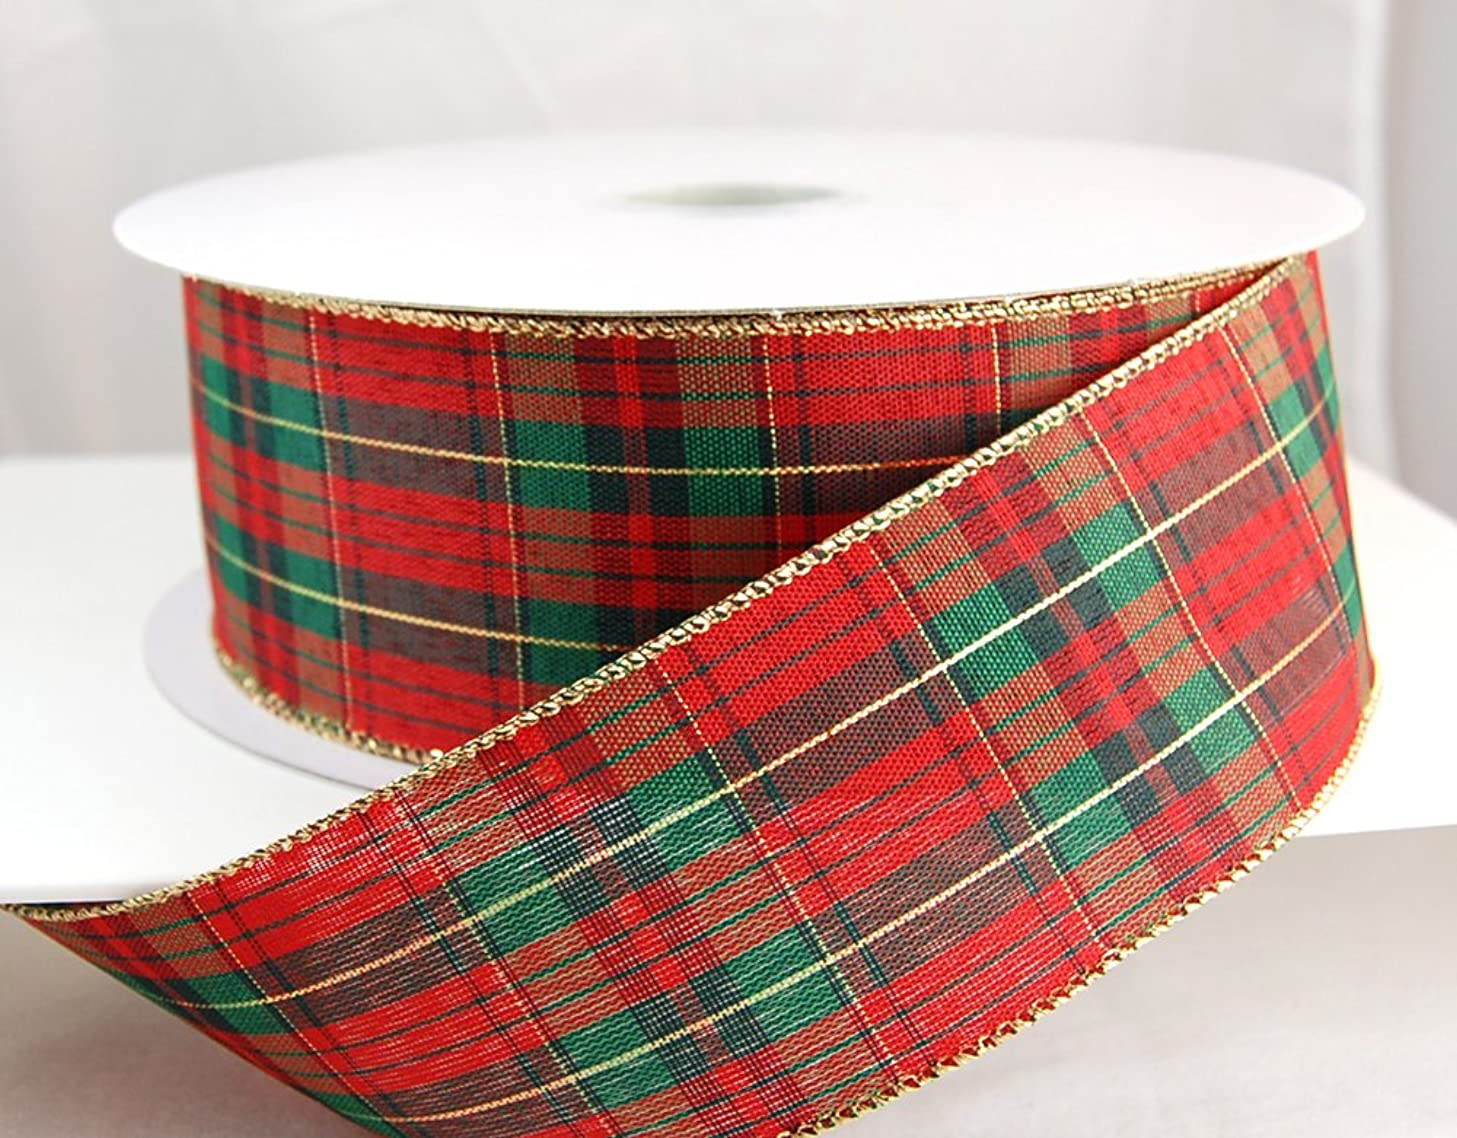 Reliant Ribbon 92321W-001-40K Mcshay Plaid Value Wired Edge Ribbon, 2-1/2 Inch X 50 Yards, Multi